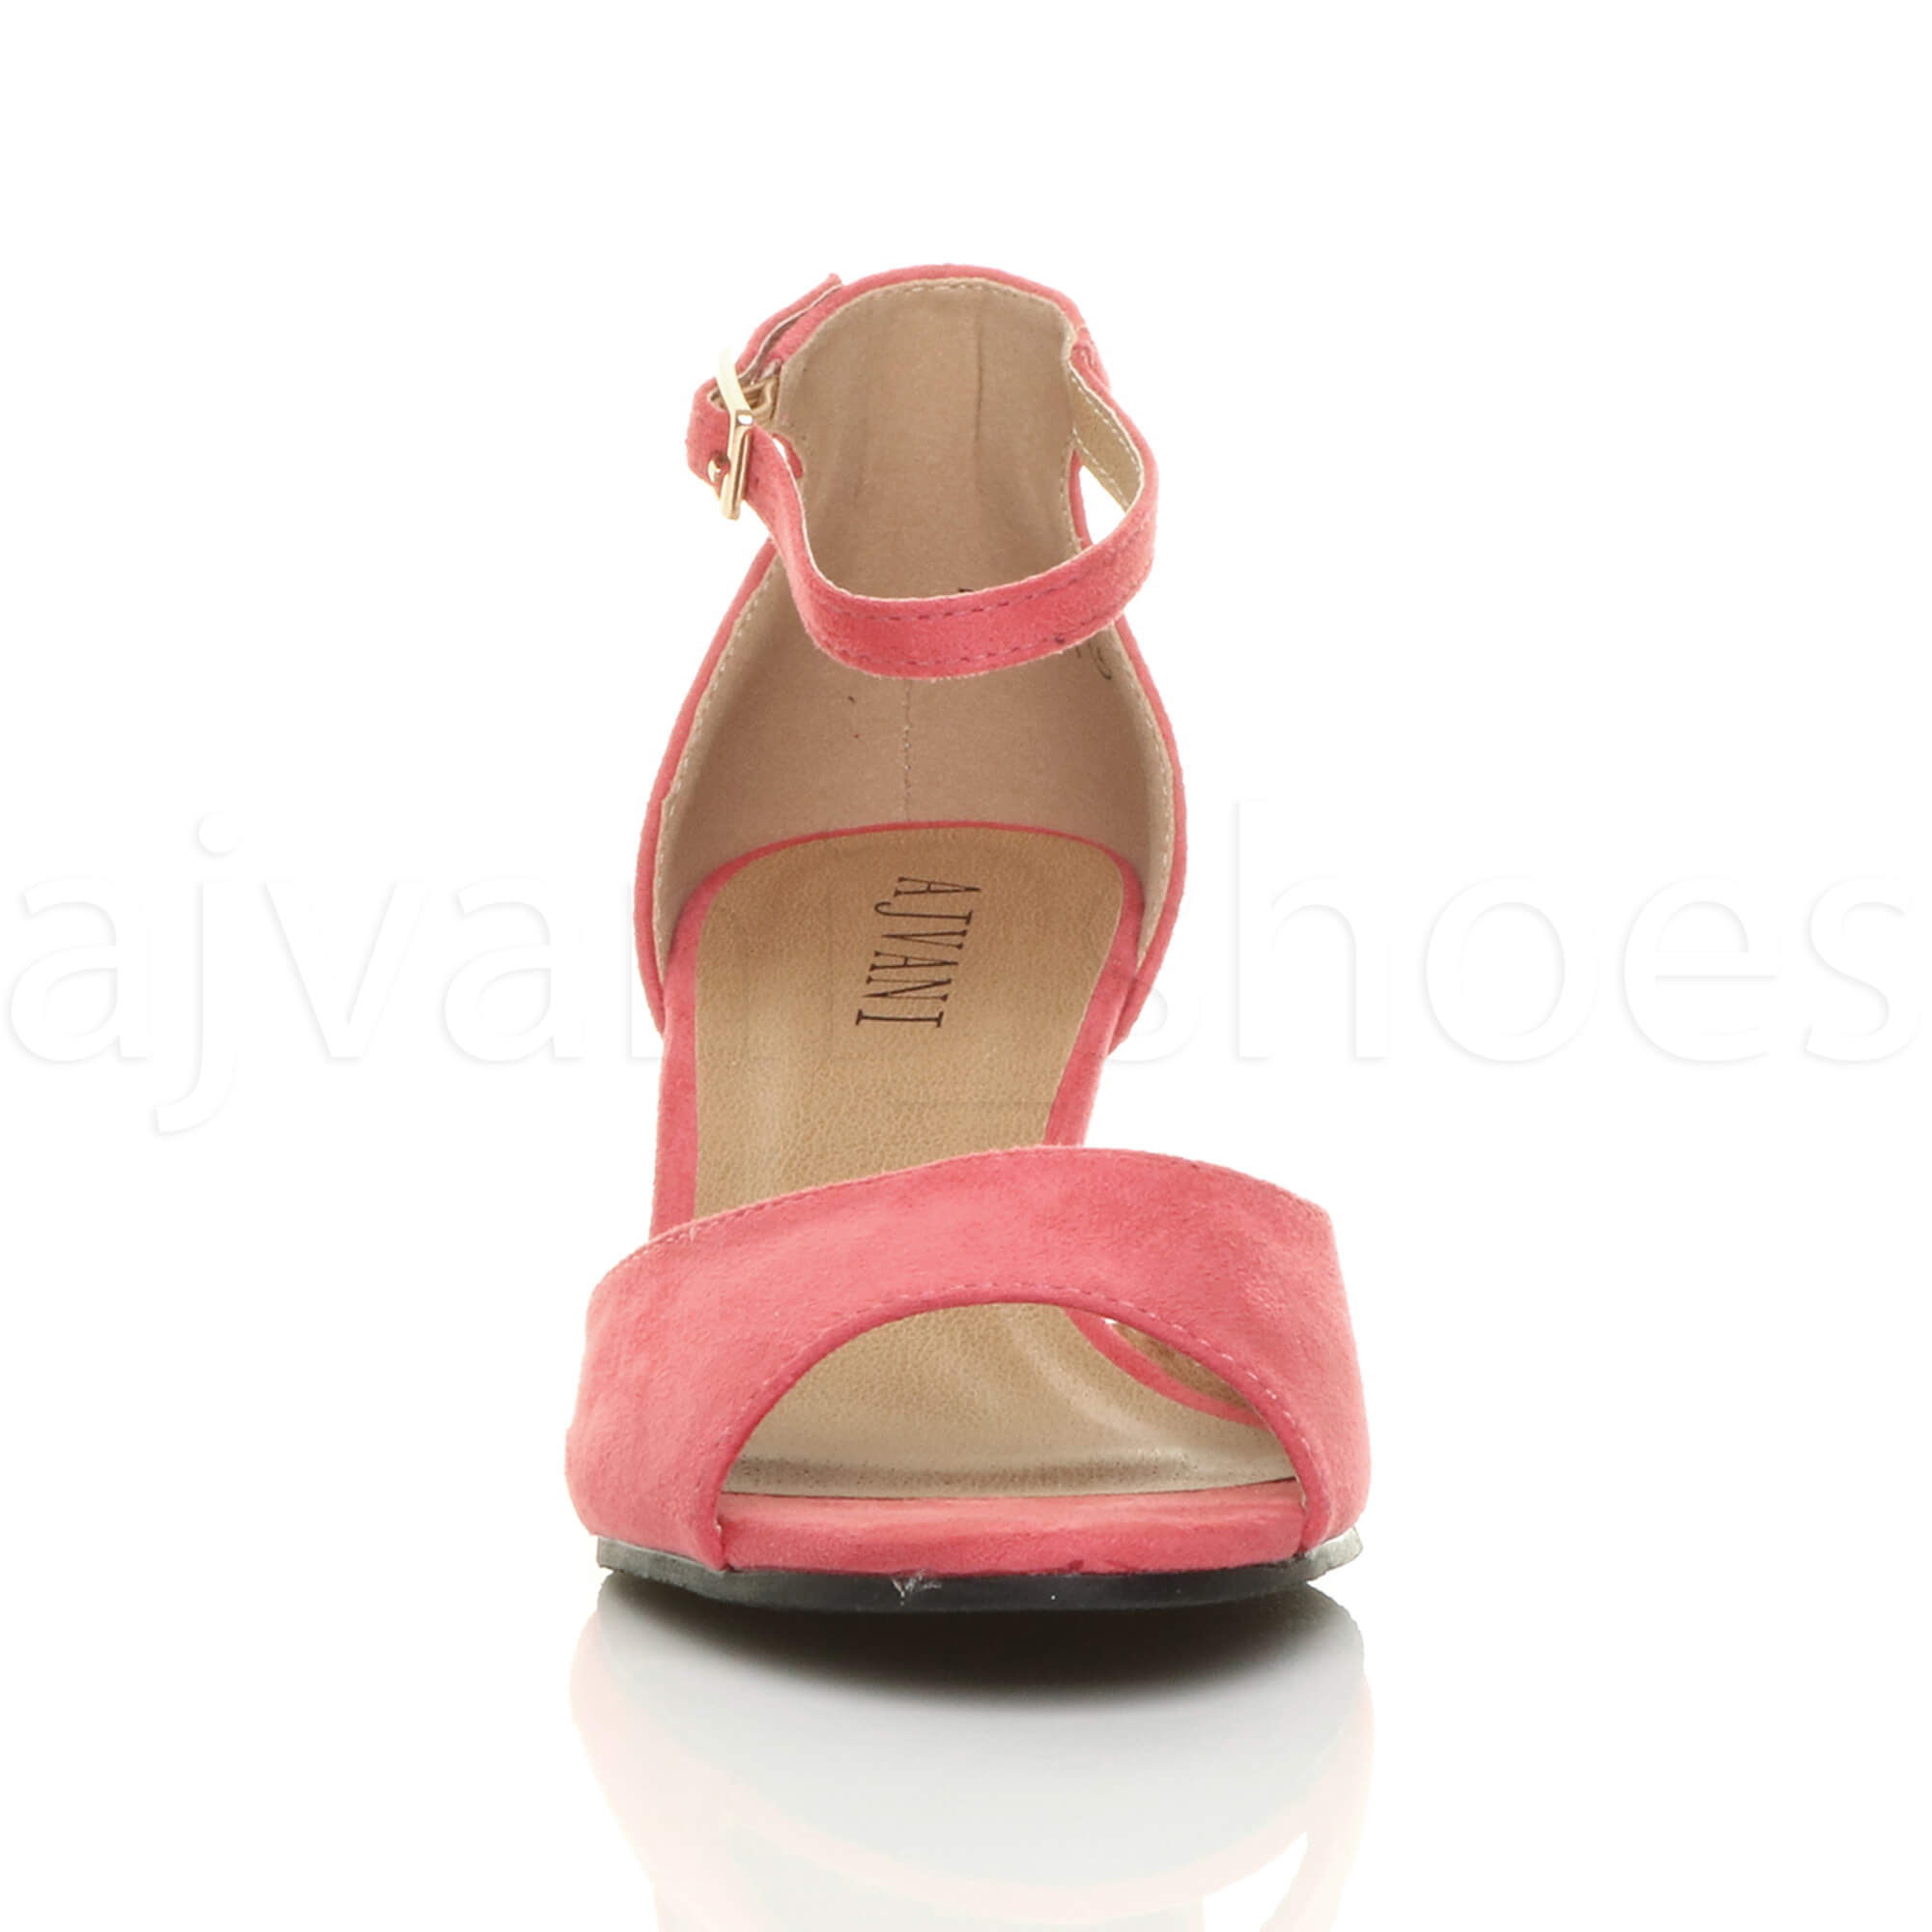 WOMENS-LADIES-LOW-MID-WEDGE-HEEL-ANKLE-STRAP-SMART-CASUAL-EVENING-SANDALS-SIZE thumbnail 39